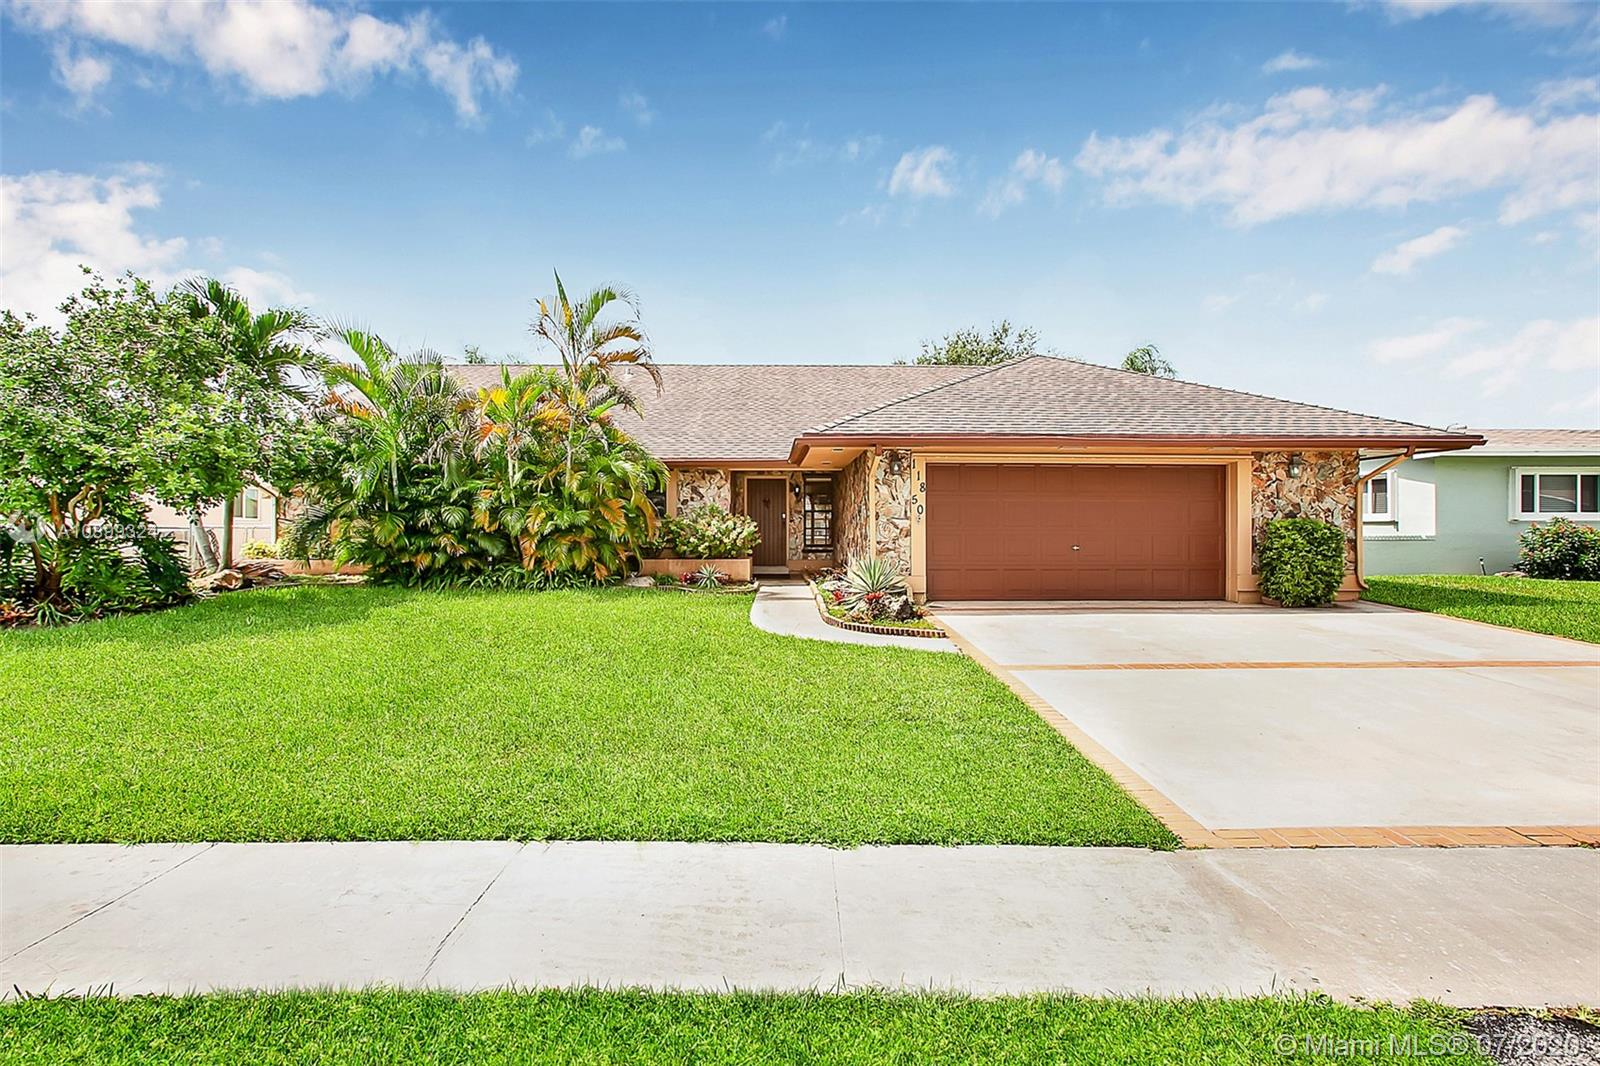 LAKEFRONT home in desirable Pembroke Lakes neighborhood with no HOA! Huge 14,000+ sf fully fenced lakefront lot! Enjoy the spectacular sunsets while relaxing on the lighted deck and gazebo on the water. Screened in patio with hot tub offers the perfect setting to enjoy outdoor dining and entertaining. Step inside and you will love the spacious 4 bedroom 2 bath, 2 car garage home. Open concept living area with tongue and groove vaulted ceilings*neutral tile floors*updated kitchen featuring wood cabinets*granite counters*SS appliances with gas cooking, and large, complete wet bar with granite counters and lots of cabinets. Both bathrooms have been beautifully updated with granite and frameless shower doors. Located only minutes to Memorial Hospital West & loads of shopping and entertainment.